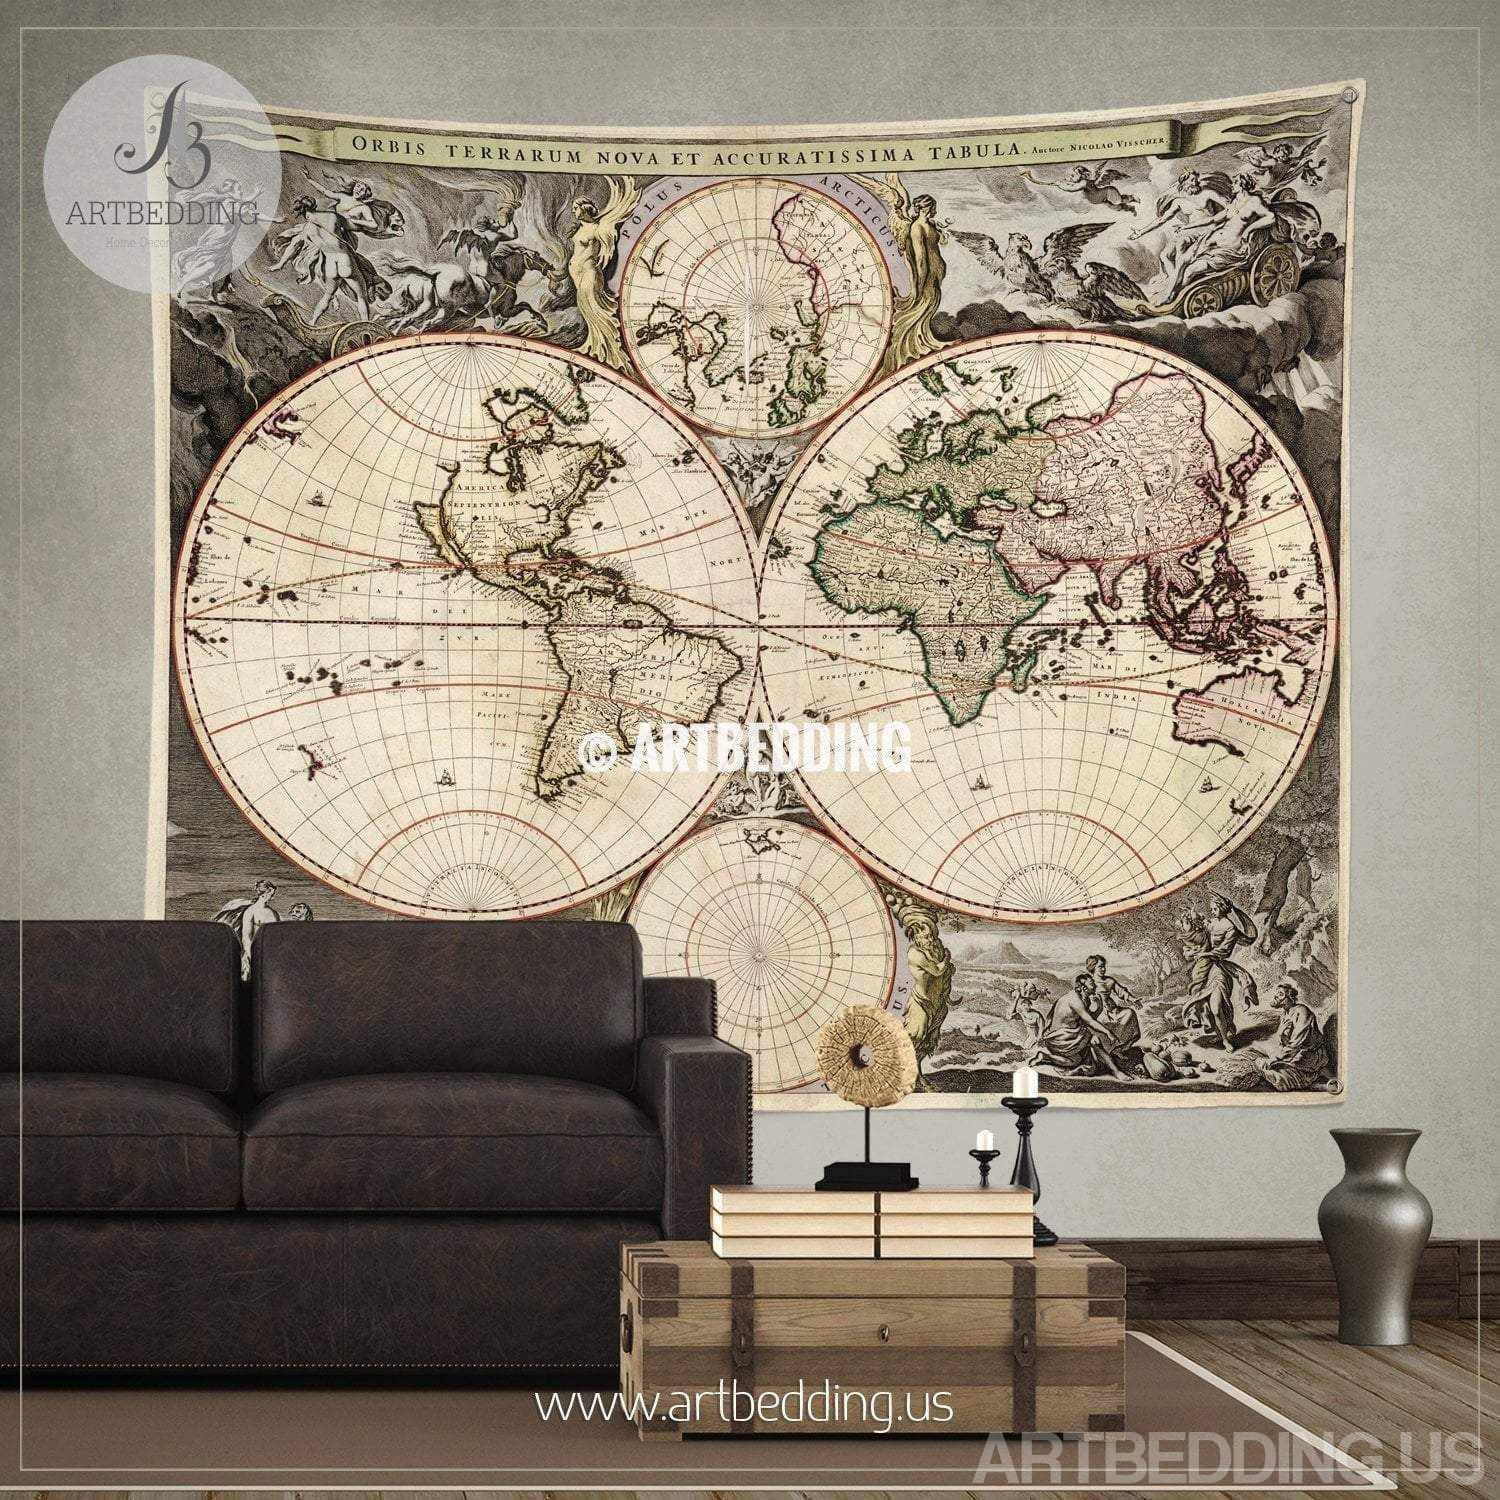 Antique World Map Tapestry.Antique World Map Wall Tapestry Vintage World Map Wall Hanging